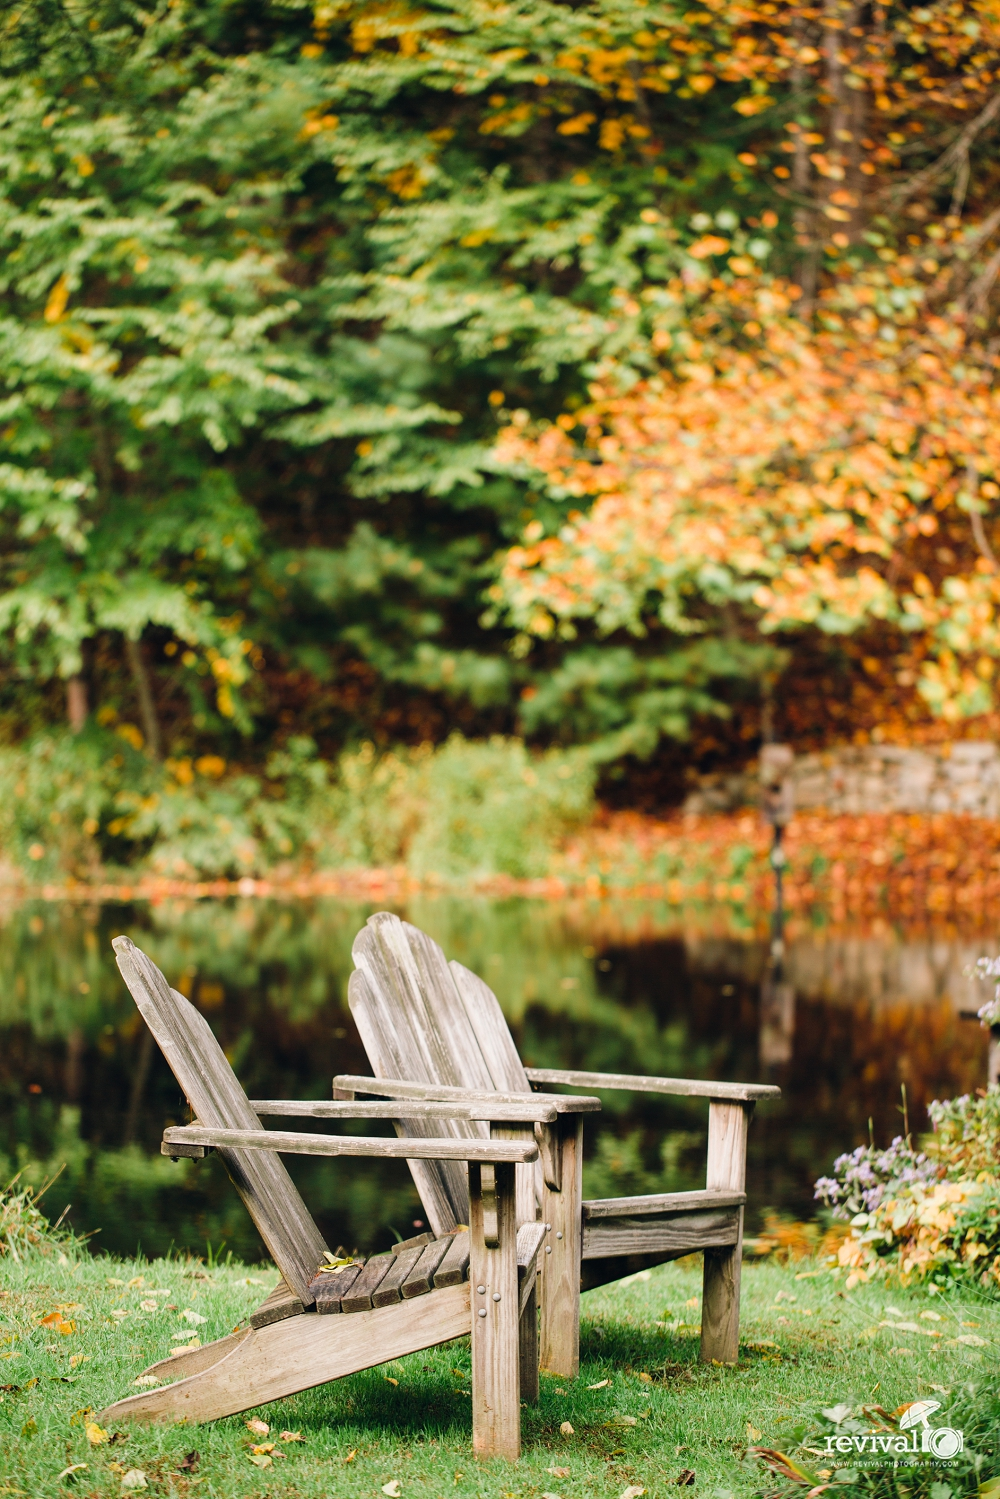 Having a destination wedding? Why not give the gift of R & R to your guests? Maybe a place where they can get away from it all, be out in nature, relax in rocking chairs, nearby nature trails and stunning natural beauty...